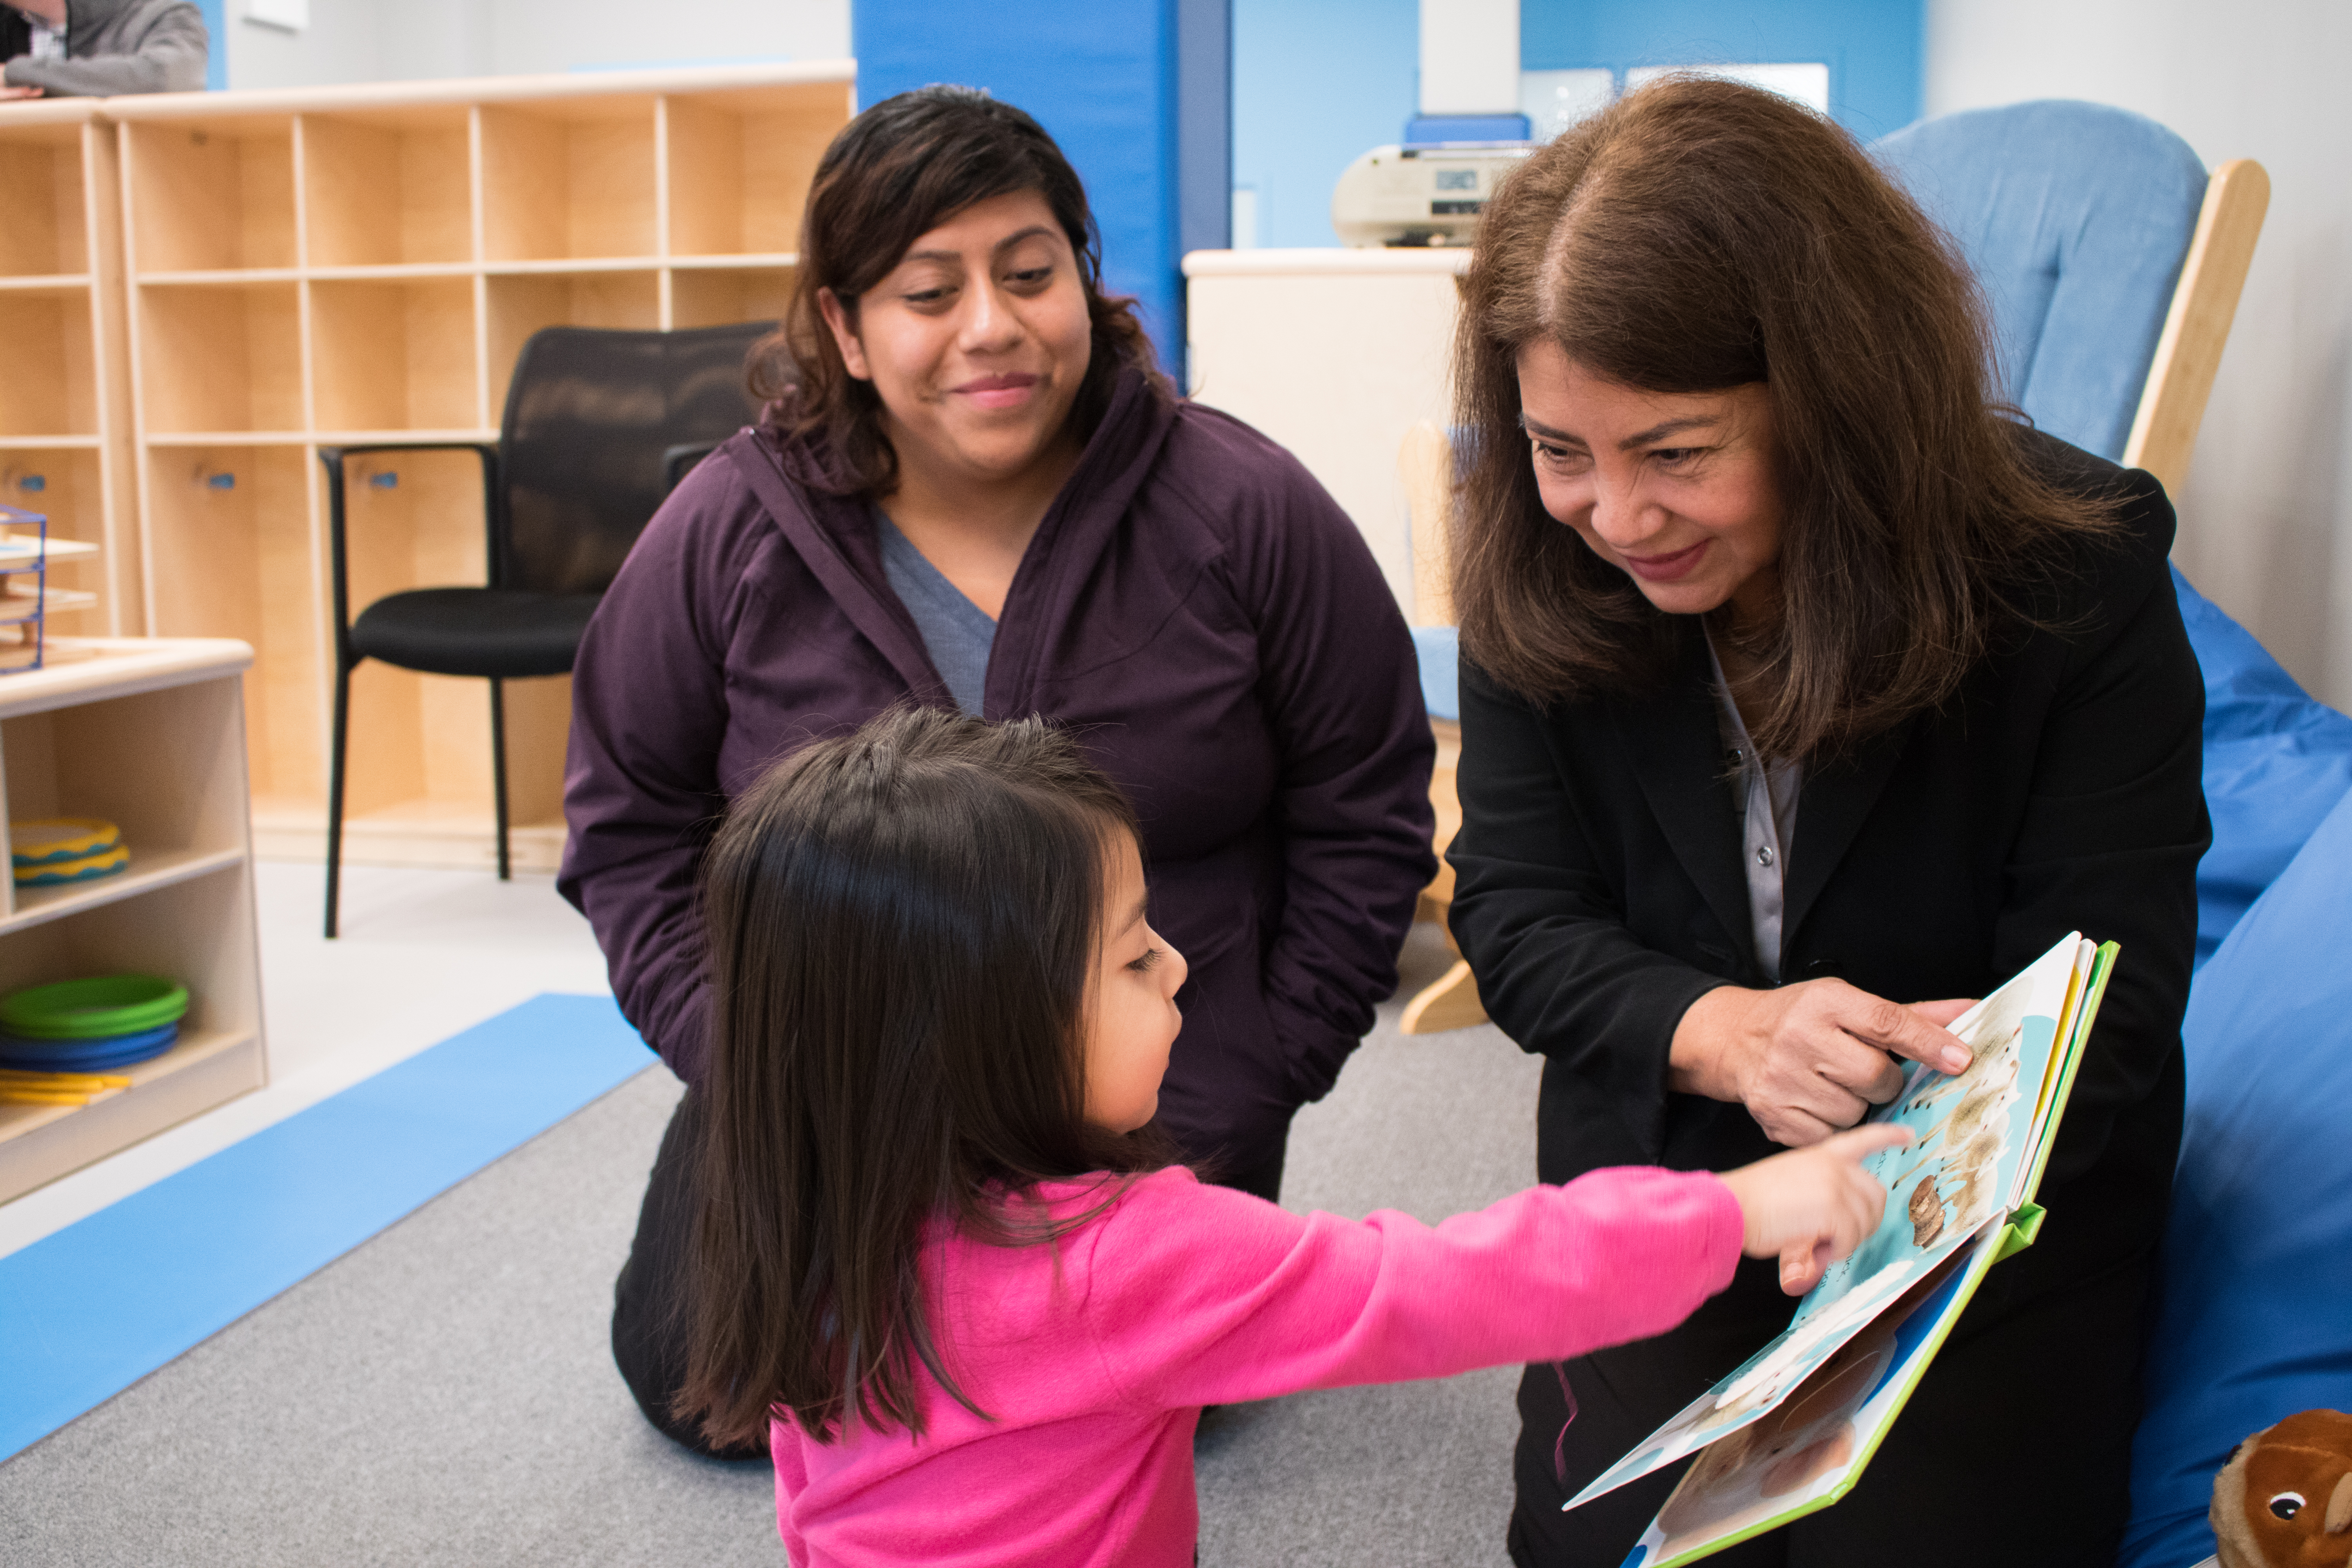 Maricela García (right) reads to Yennya Segura's (left) daughter in Gads Hill Center's new $7 million facility in Brighton Park.